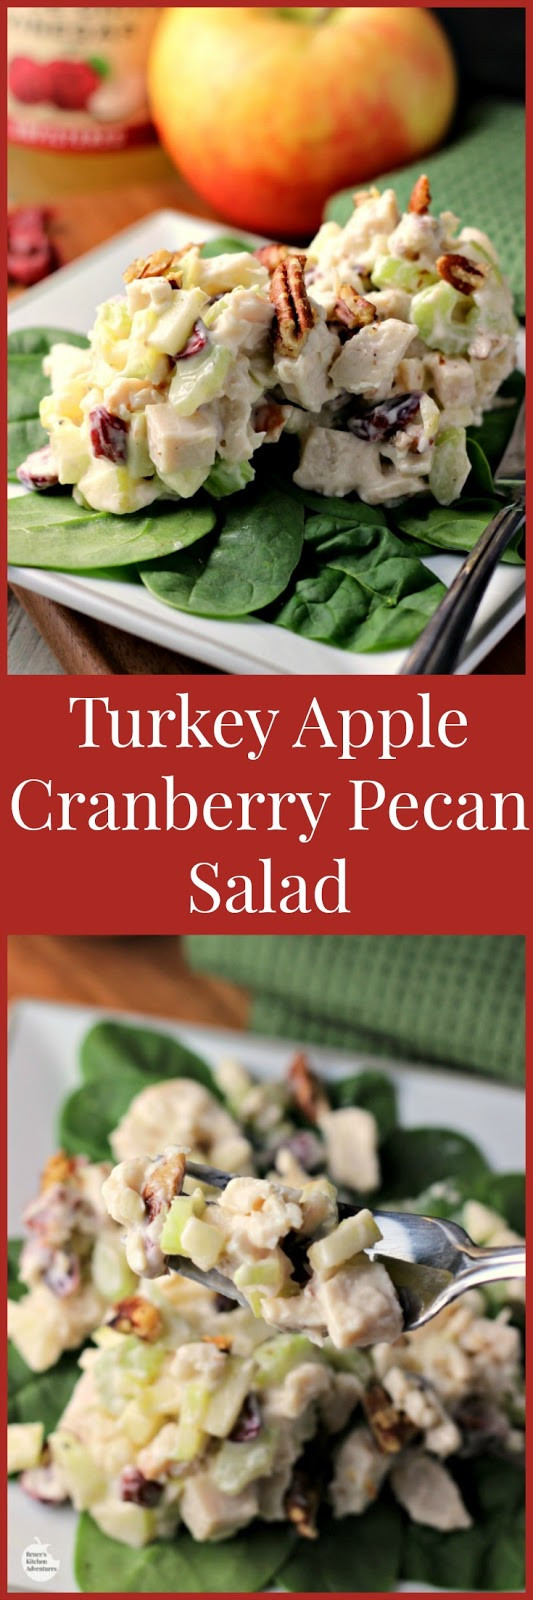 Cranberry Salad Recipes For Thanksgiving  Turkey Apple Cranberry Pecan Salad